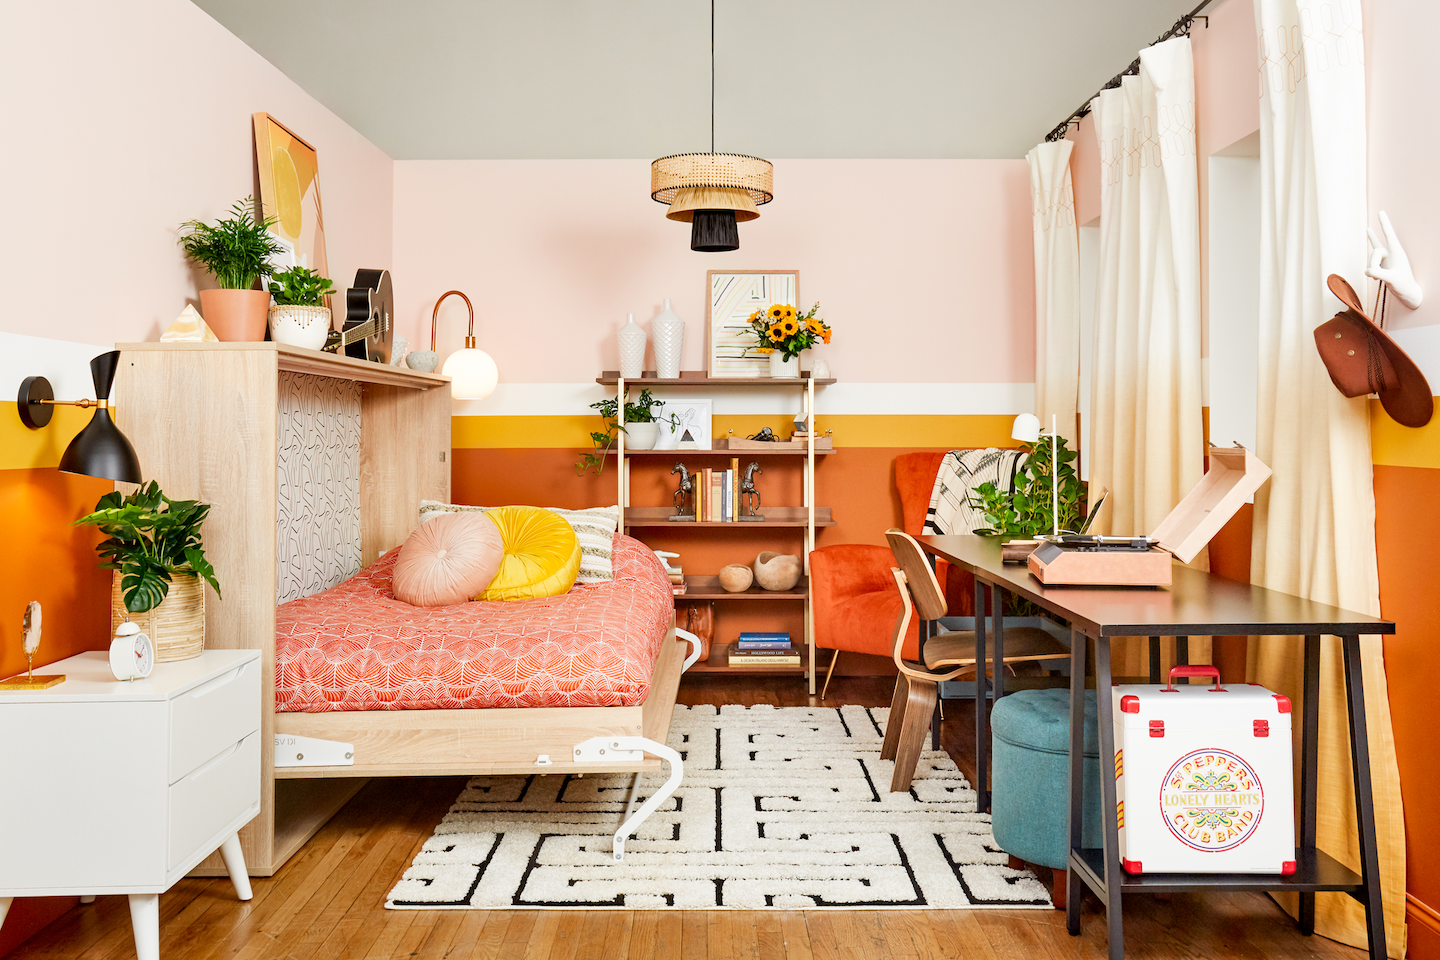 """In partnership with Overstock, designer Natalie Papier created a home office / guest room for the trendy """"Flexible spaces"""" sticker.  The designer also joined site director Danielle Blundell for a branded edition of a"""